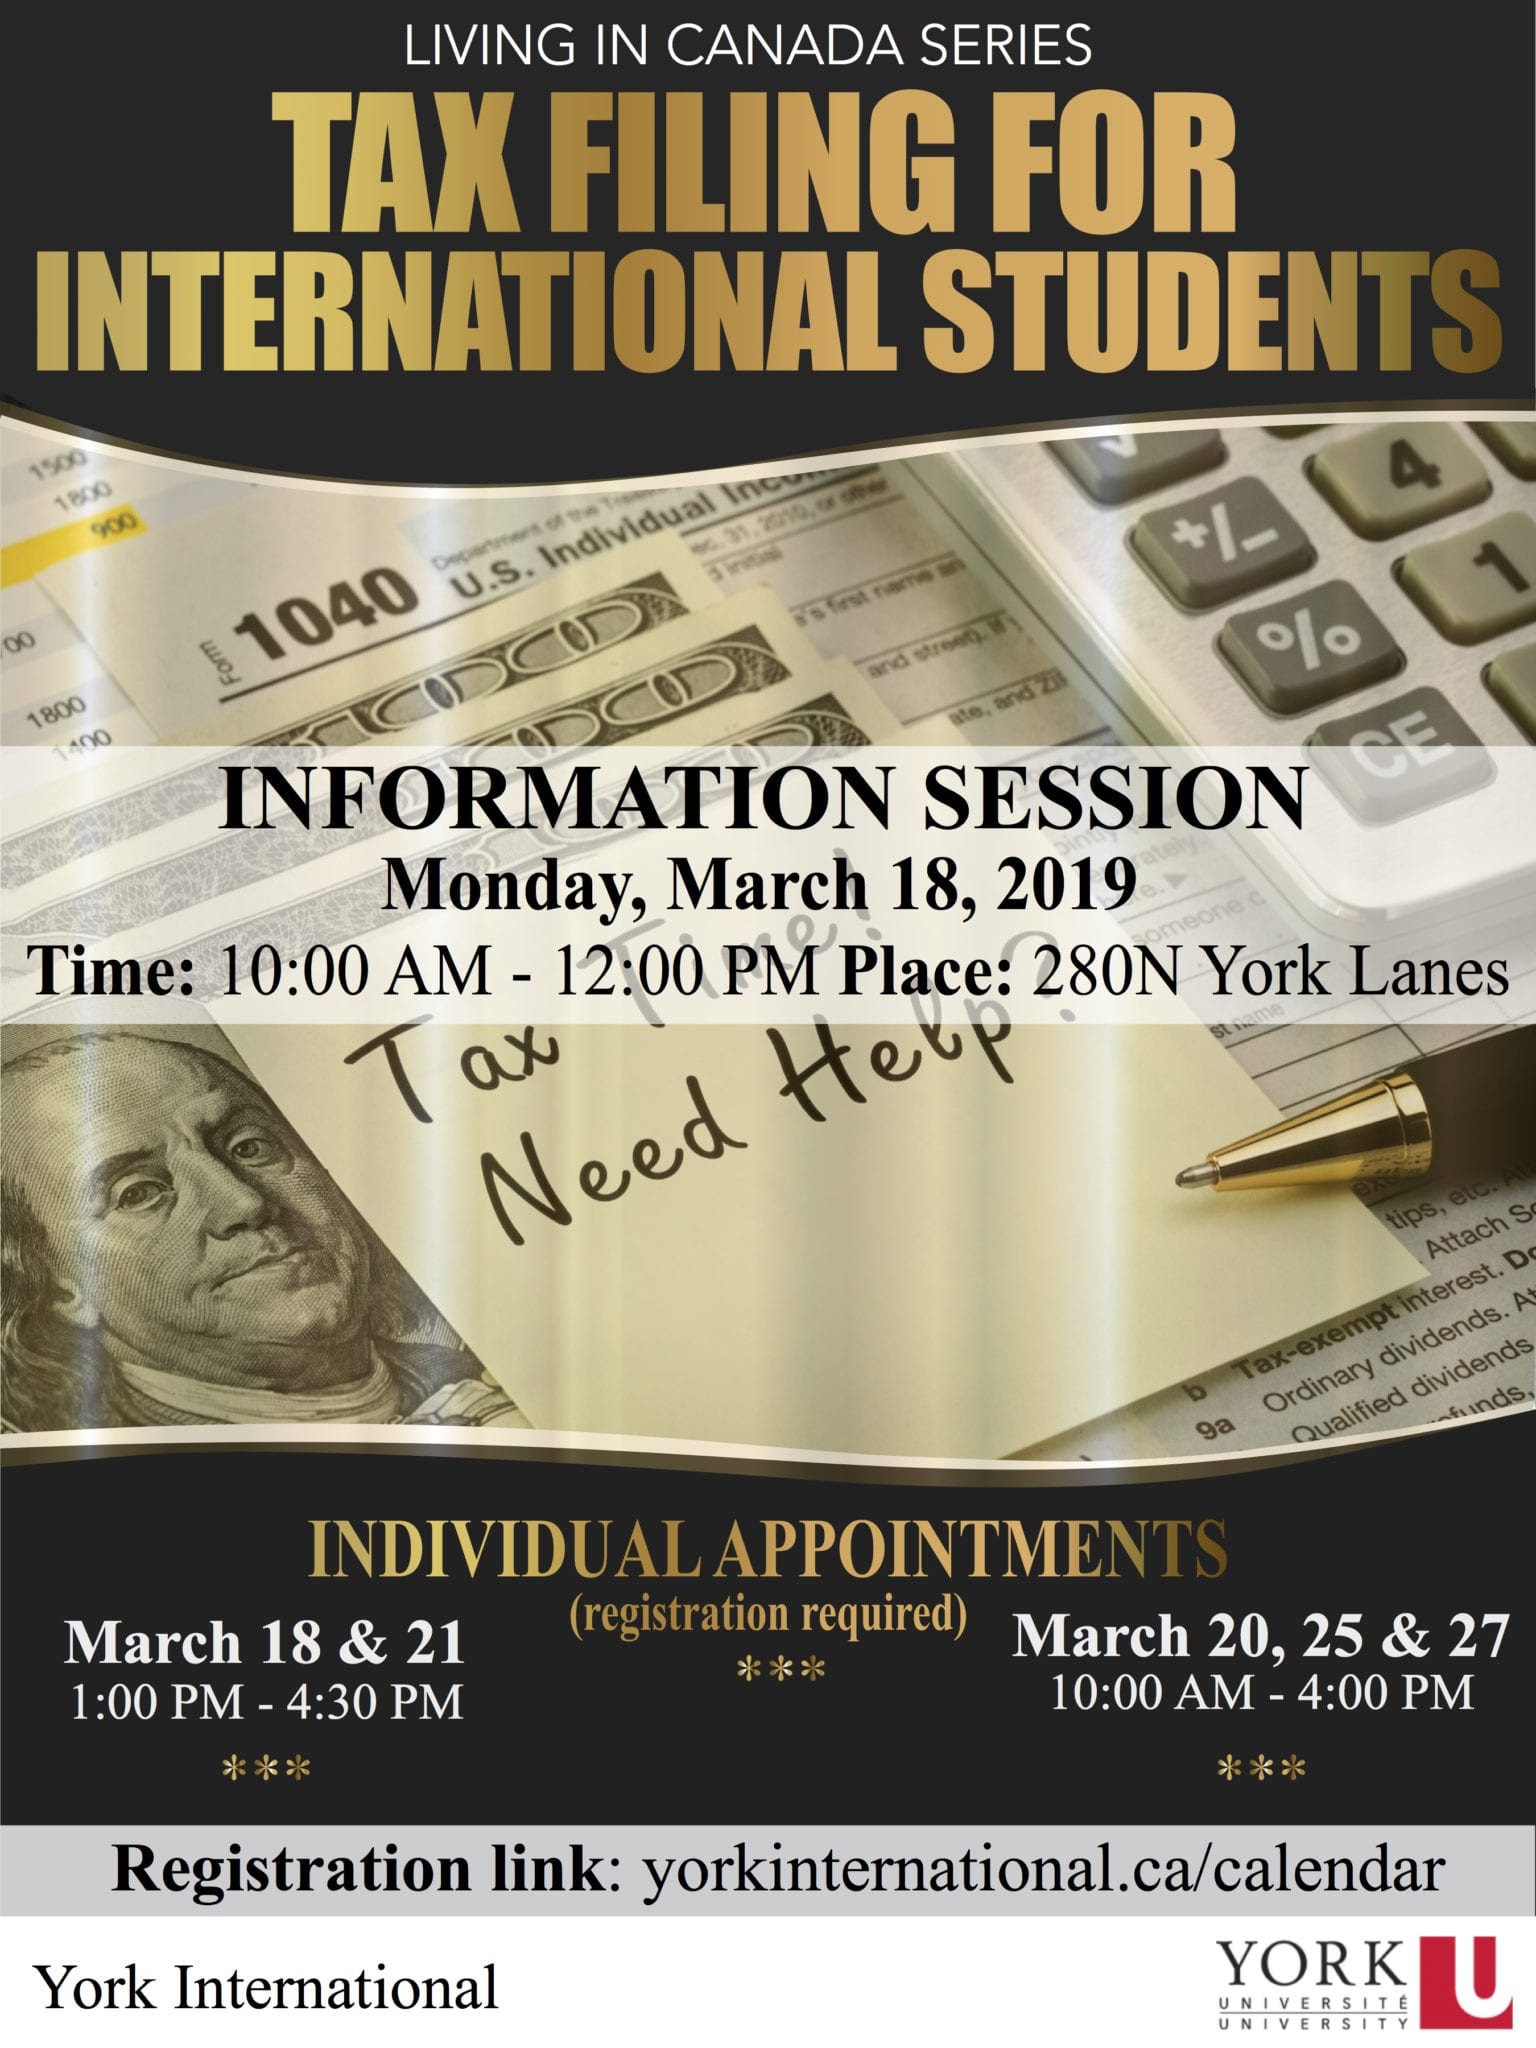 Tax Filing Appointments for International Students